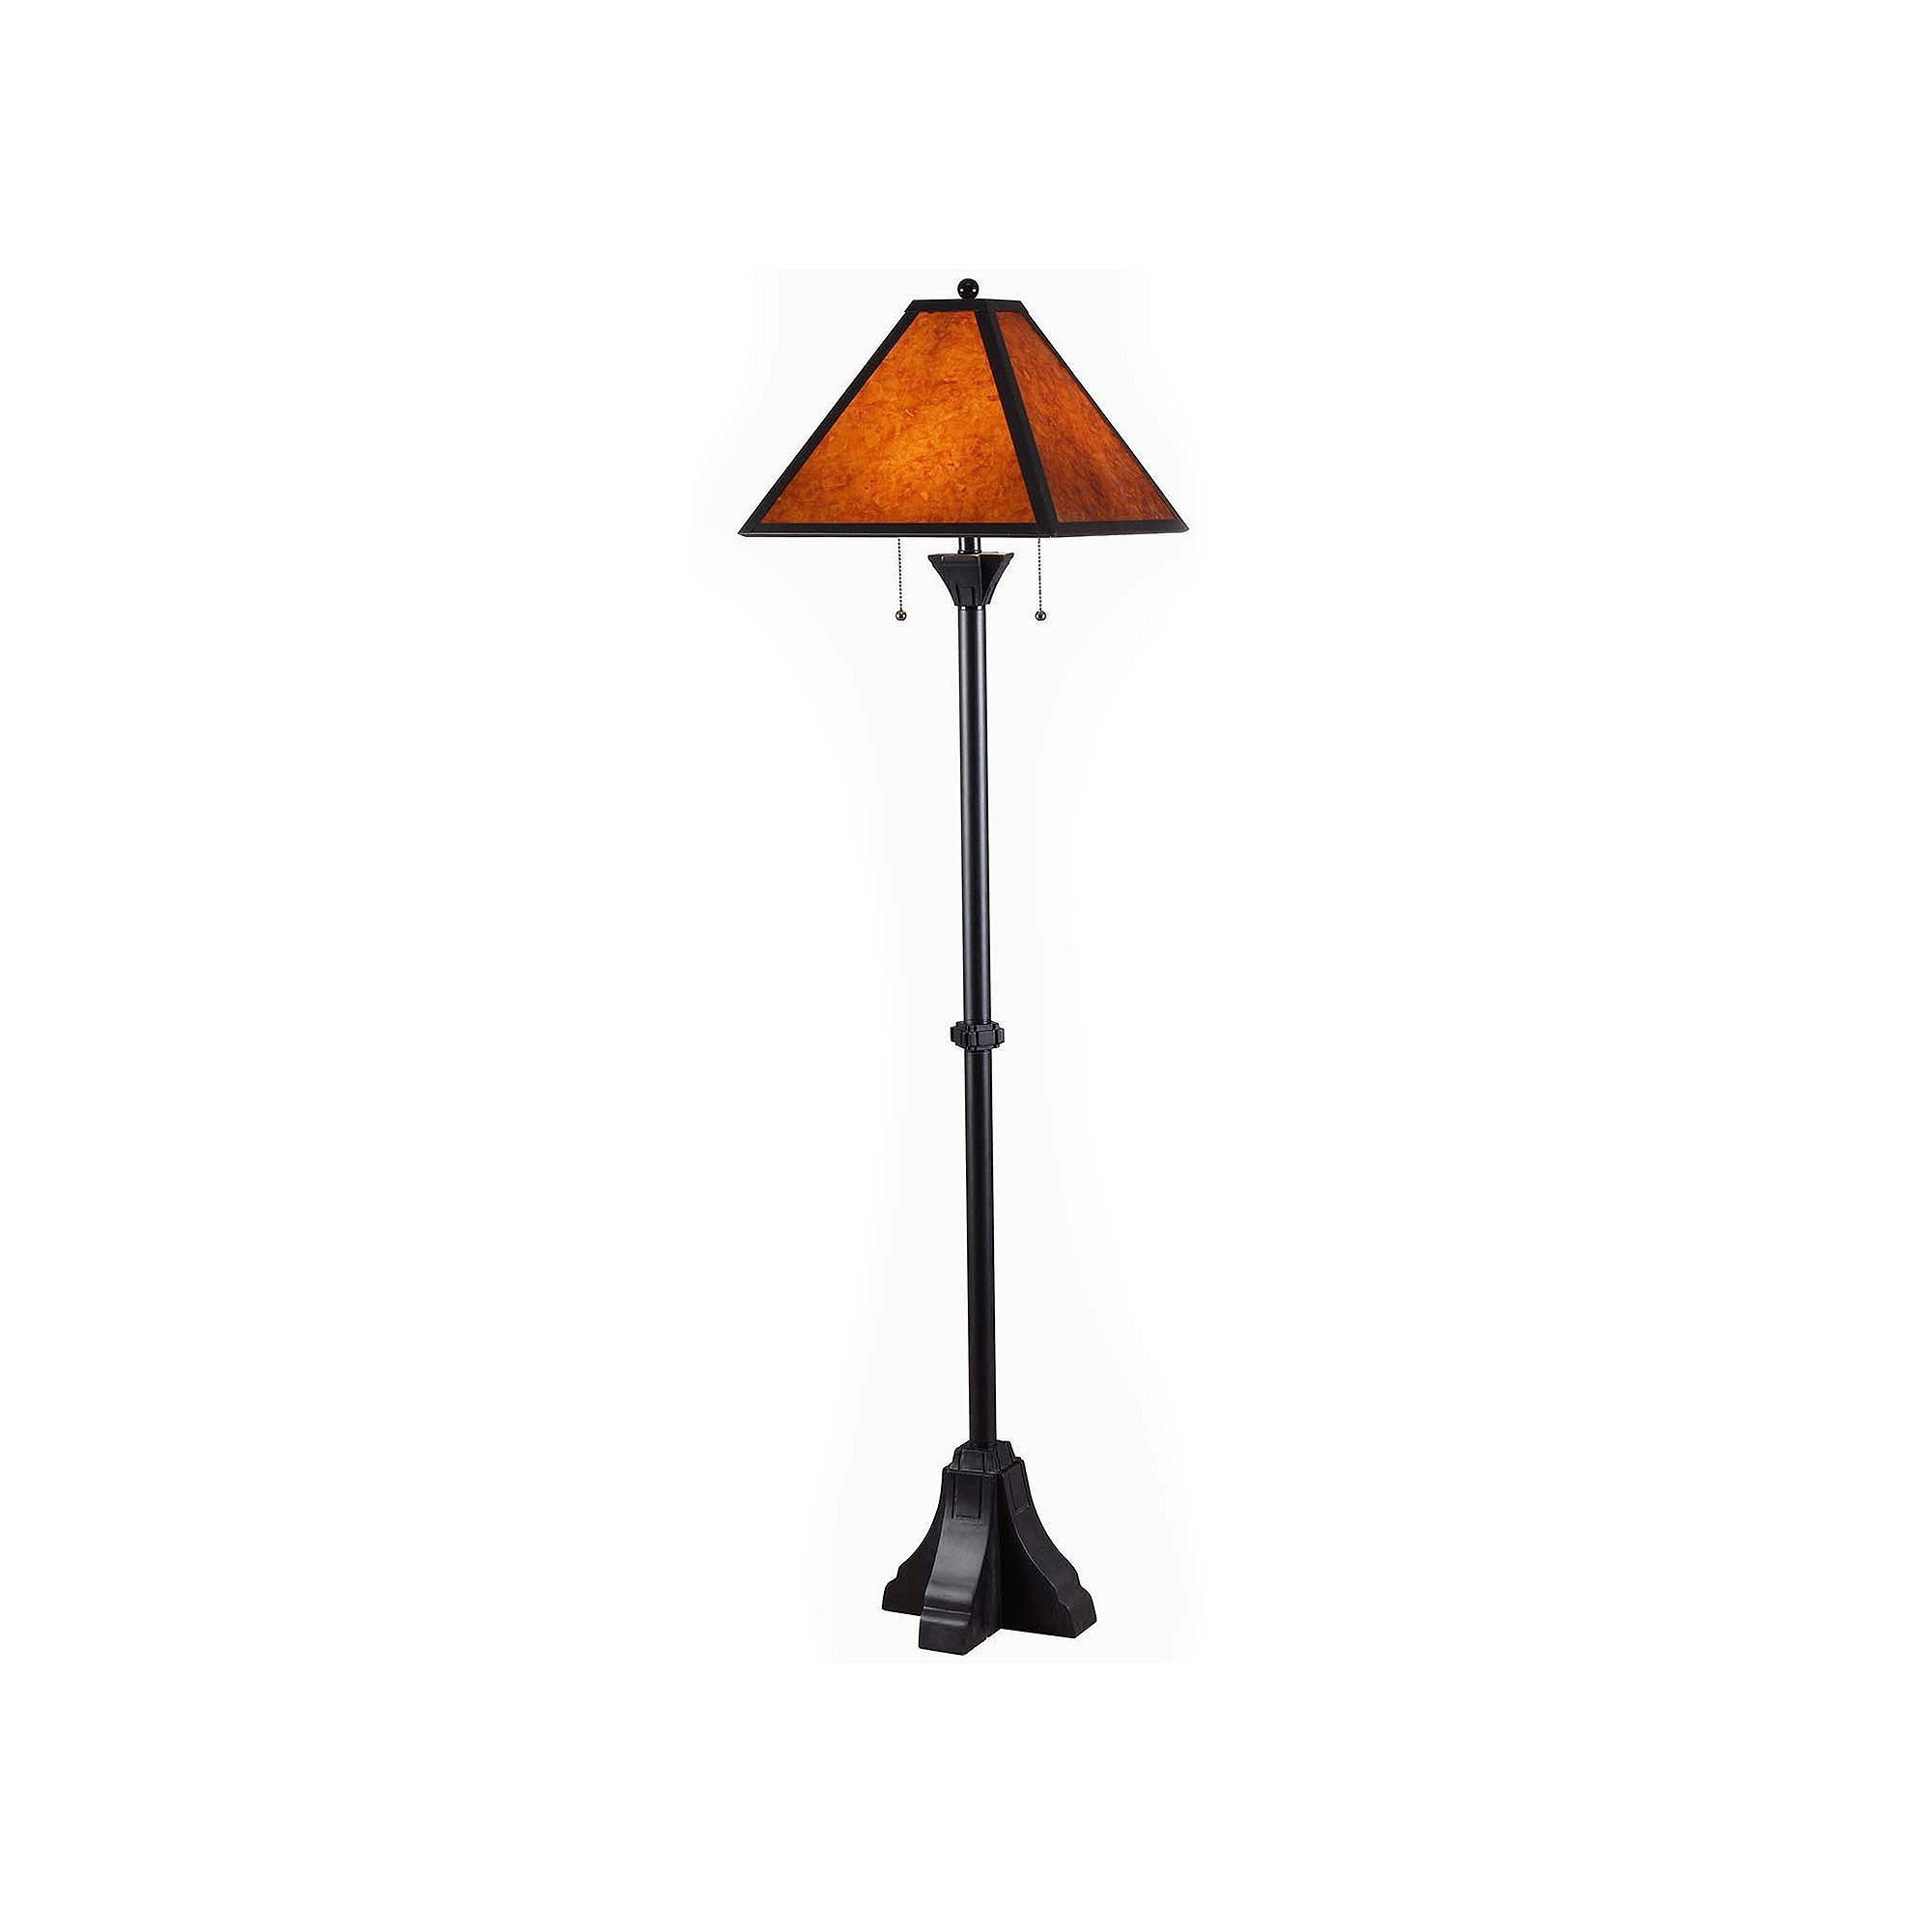 Kenroy Home Miles Floor Lamp, Other Clrs